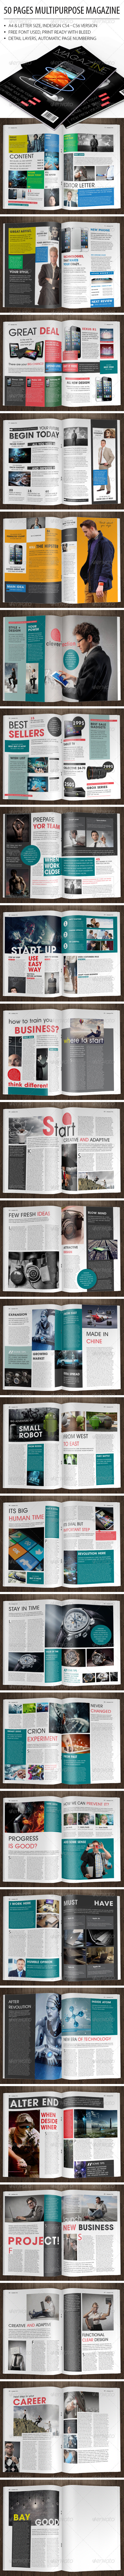 A4/Letter 50 pages Magazine Template - Magazines Print Templates